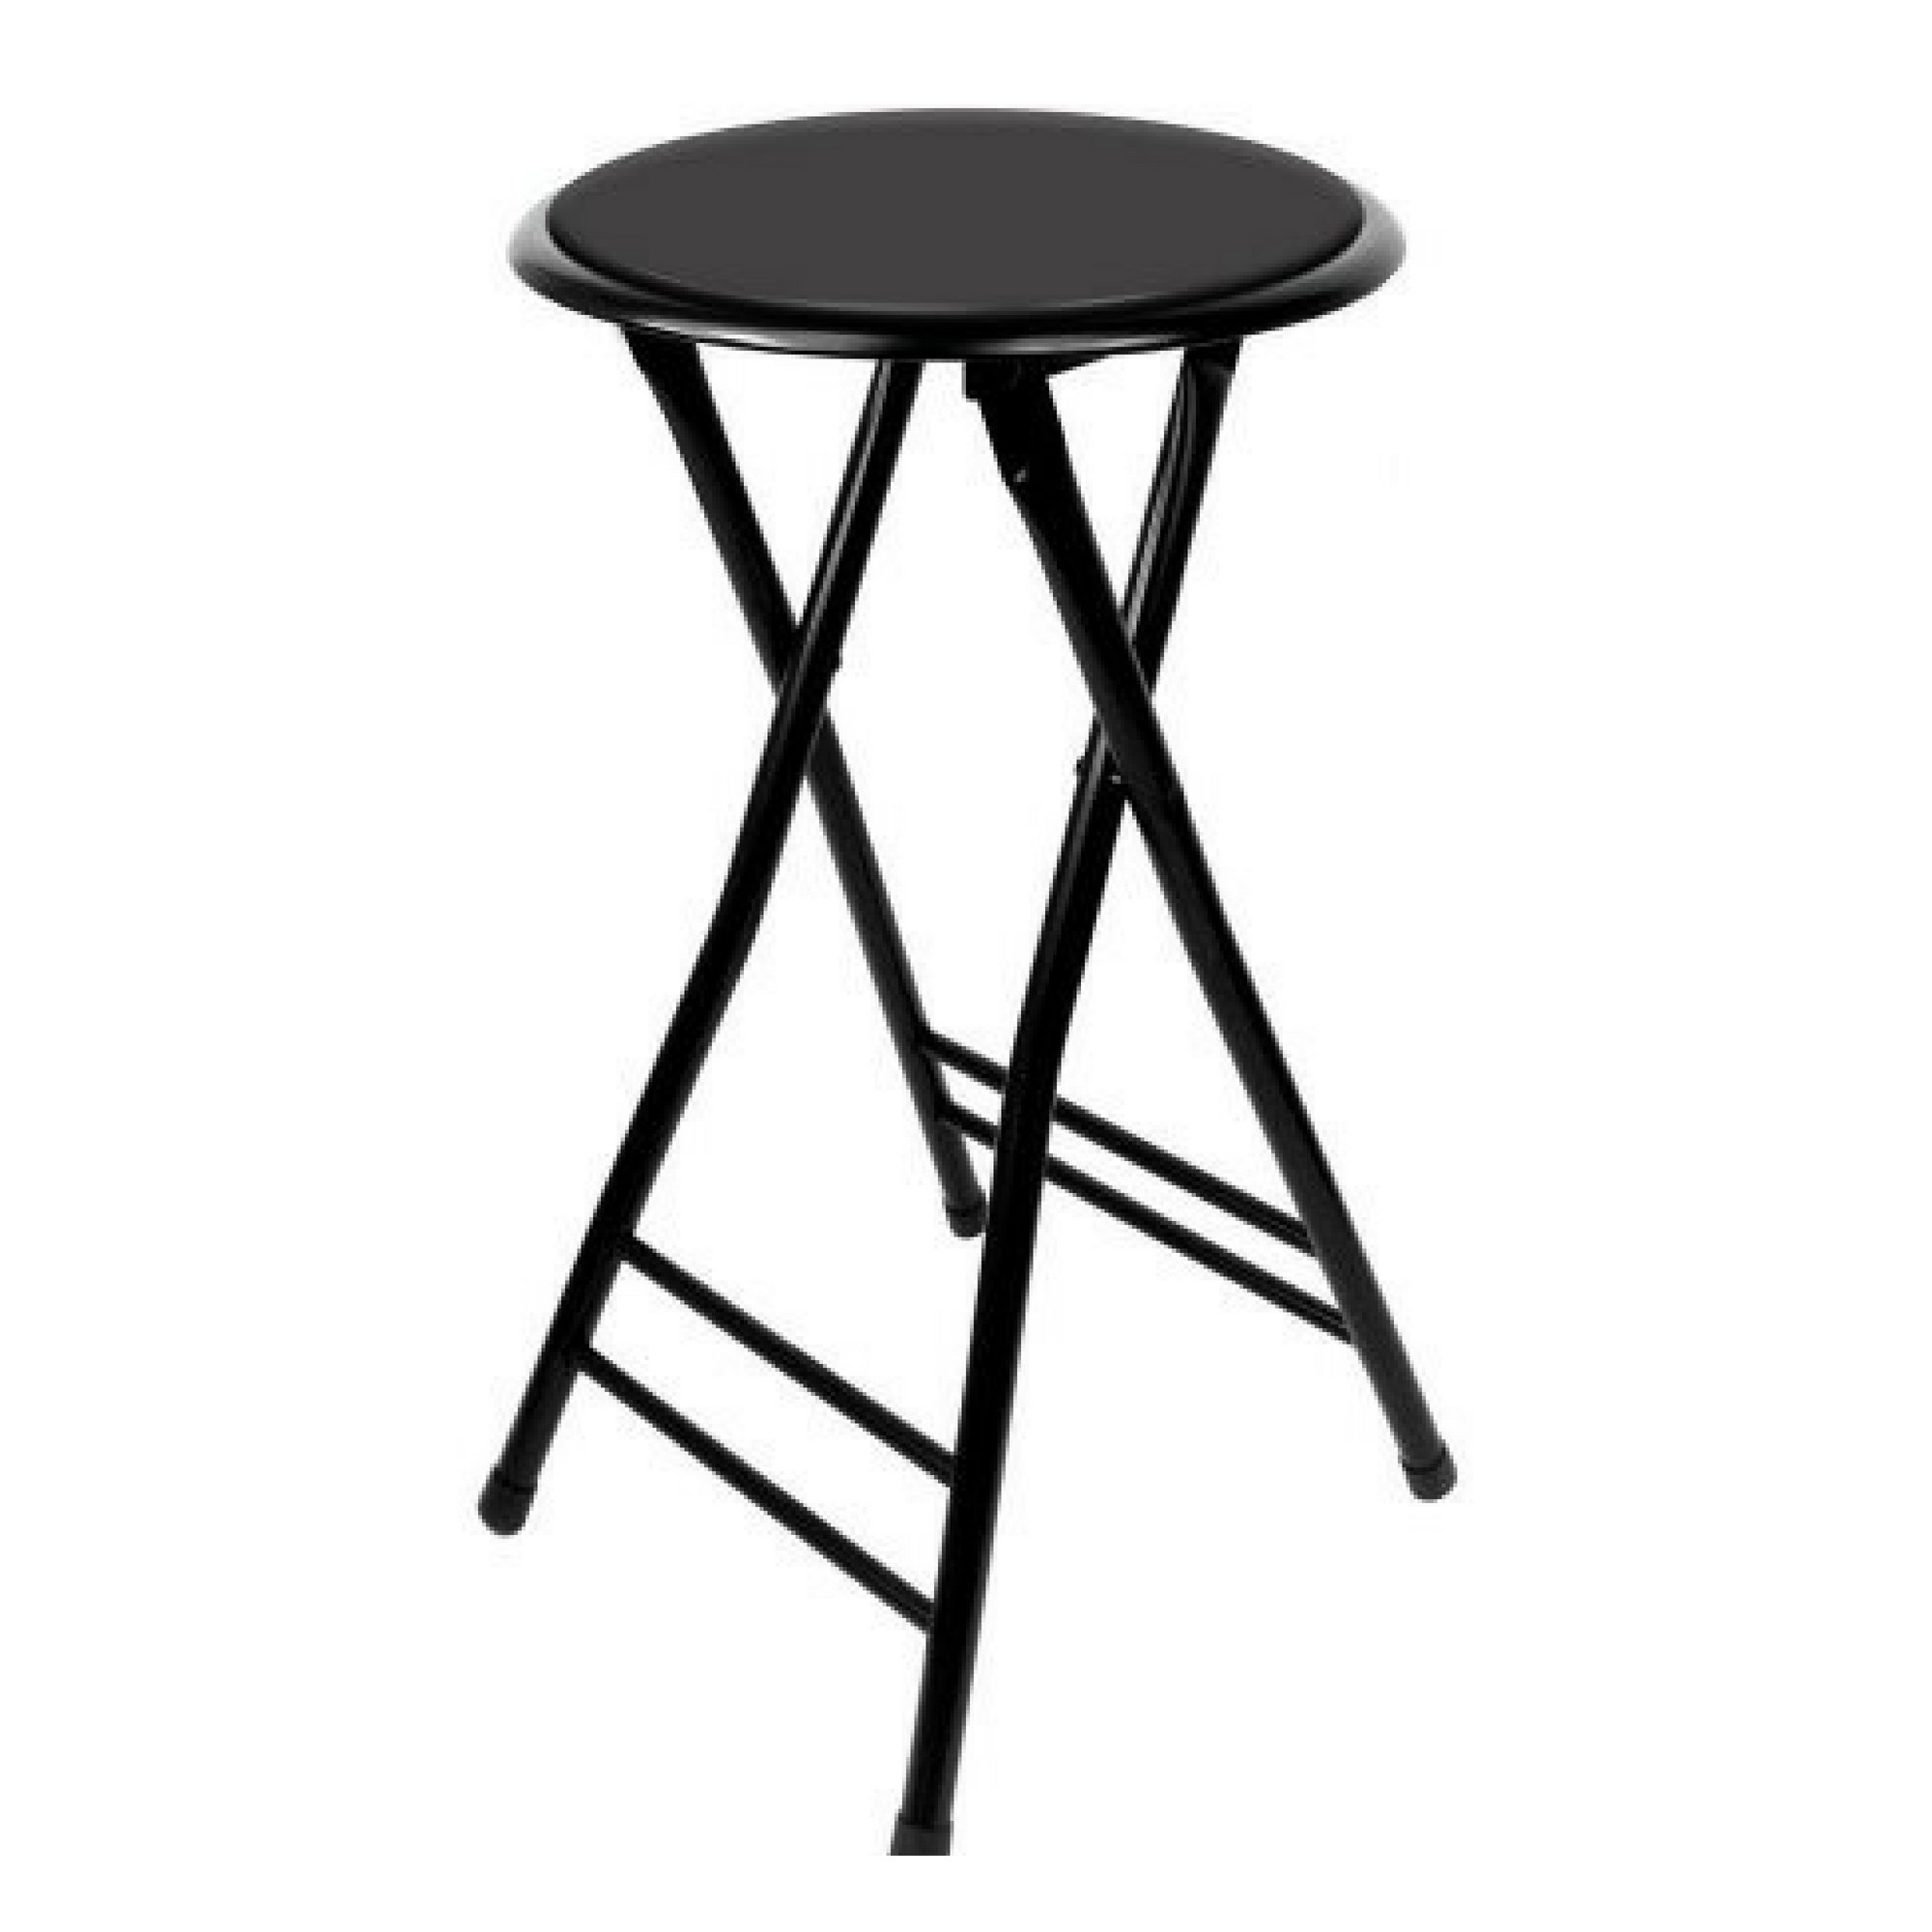 24'' Cushioned Folding Stool, Black Colors by Trademark Home Collection